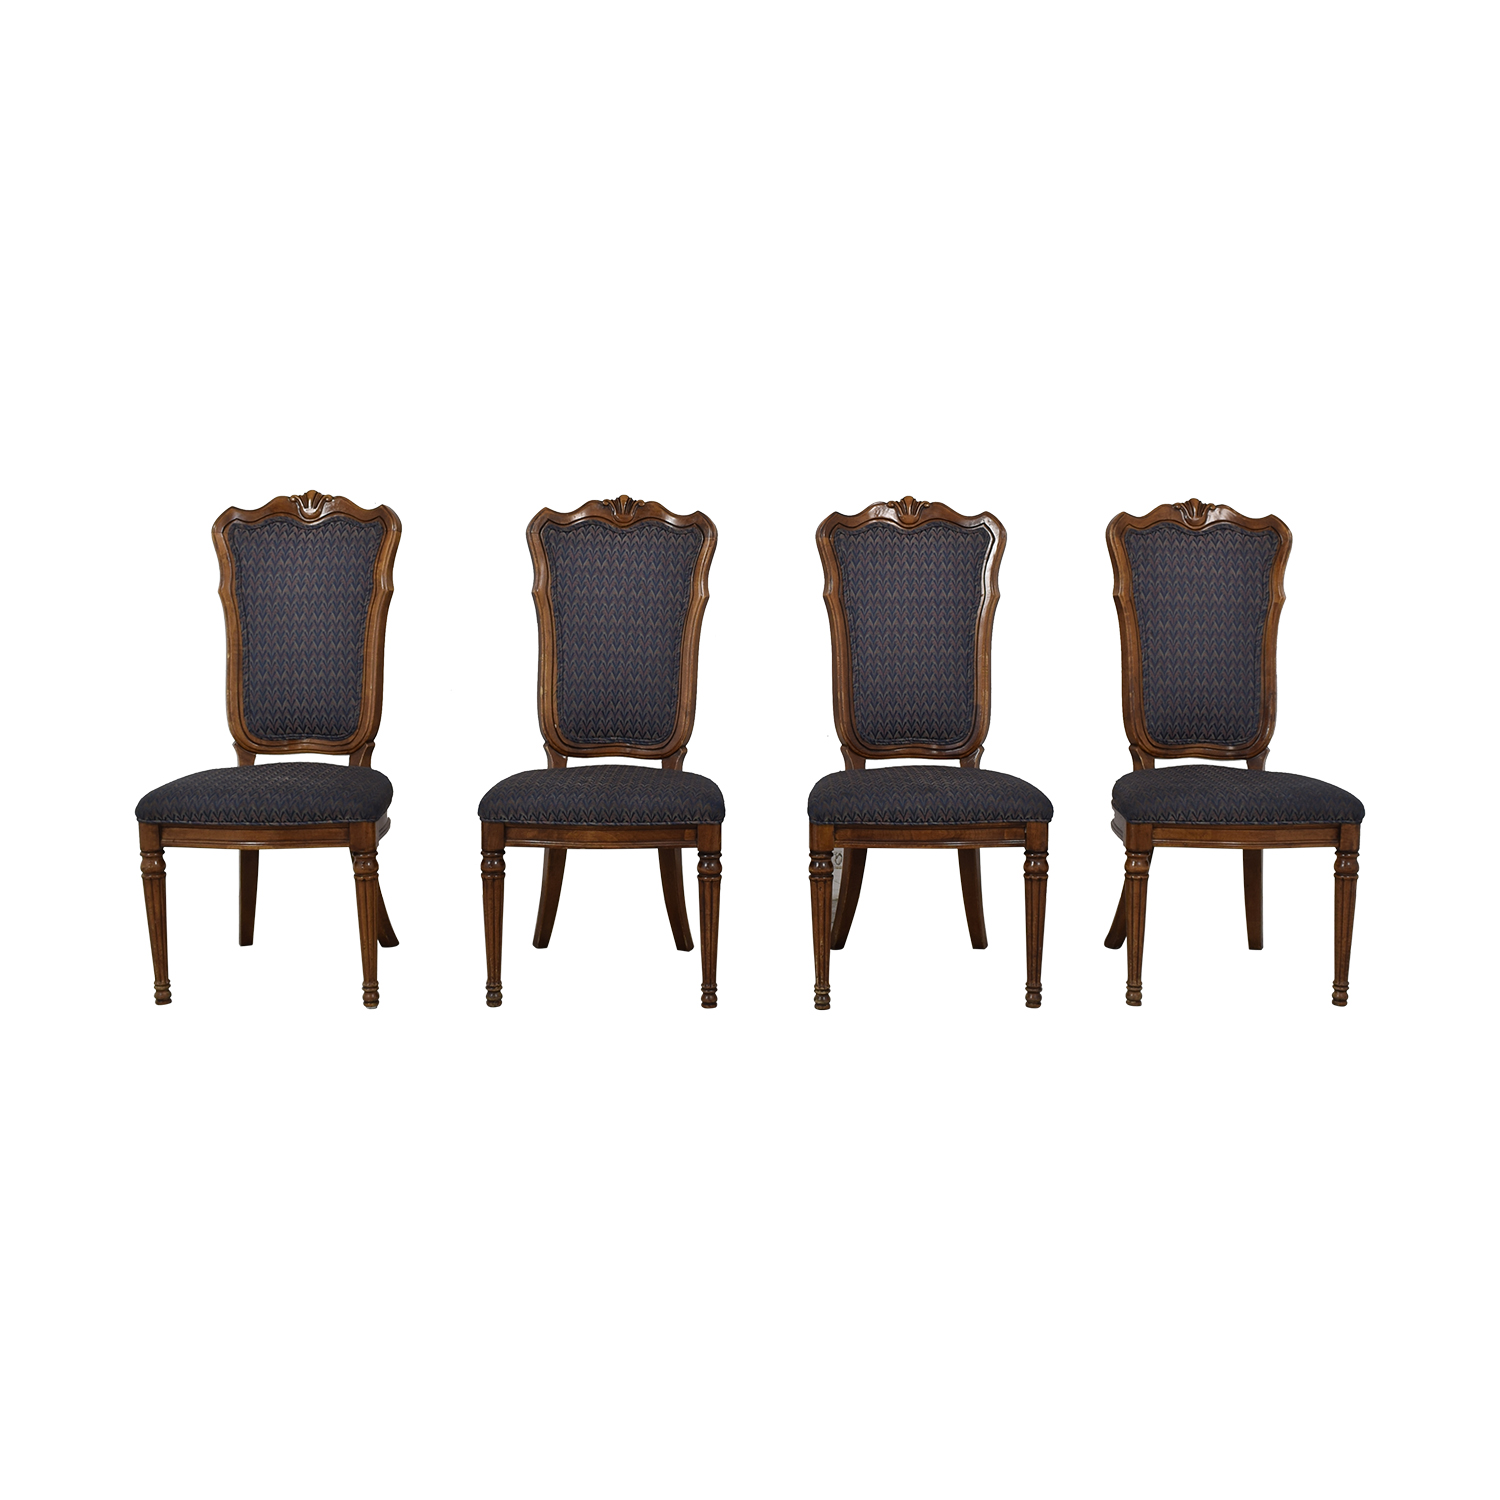 buy Printed Upholstered Dining Chairs